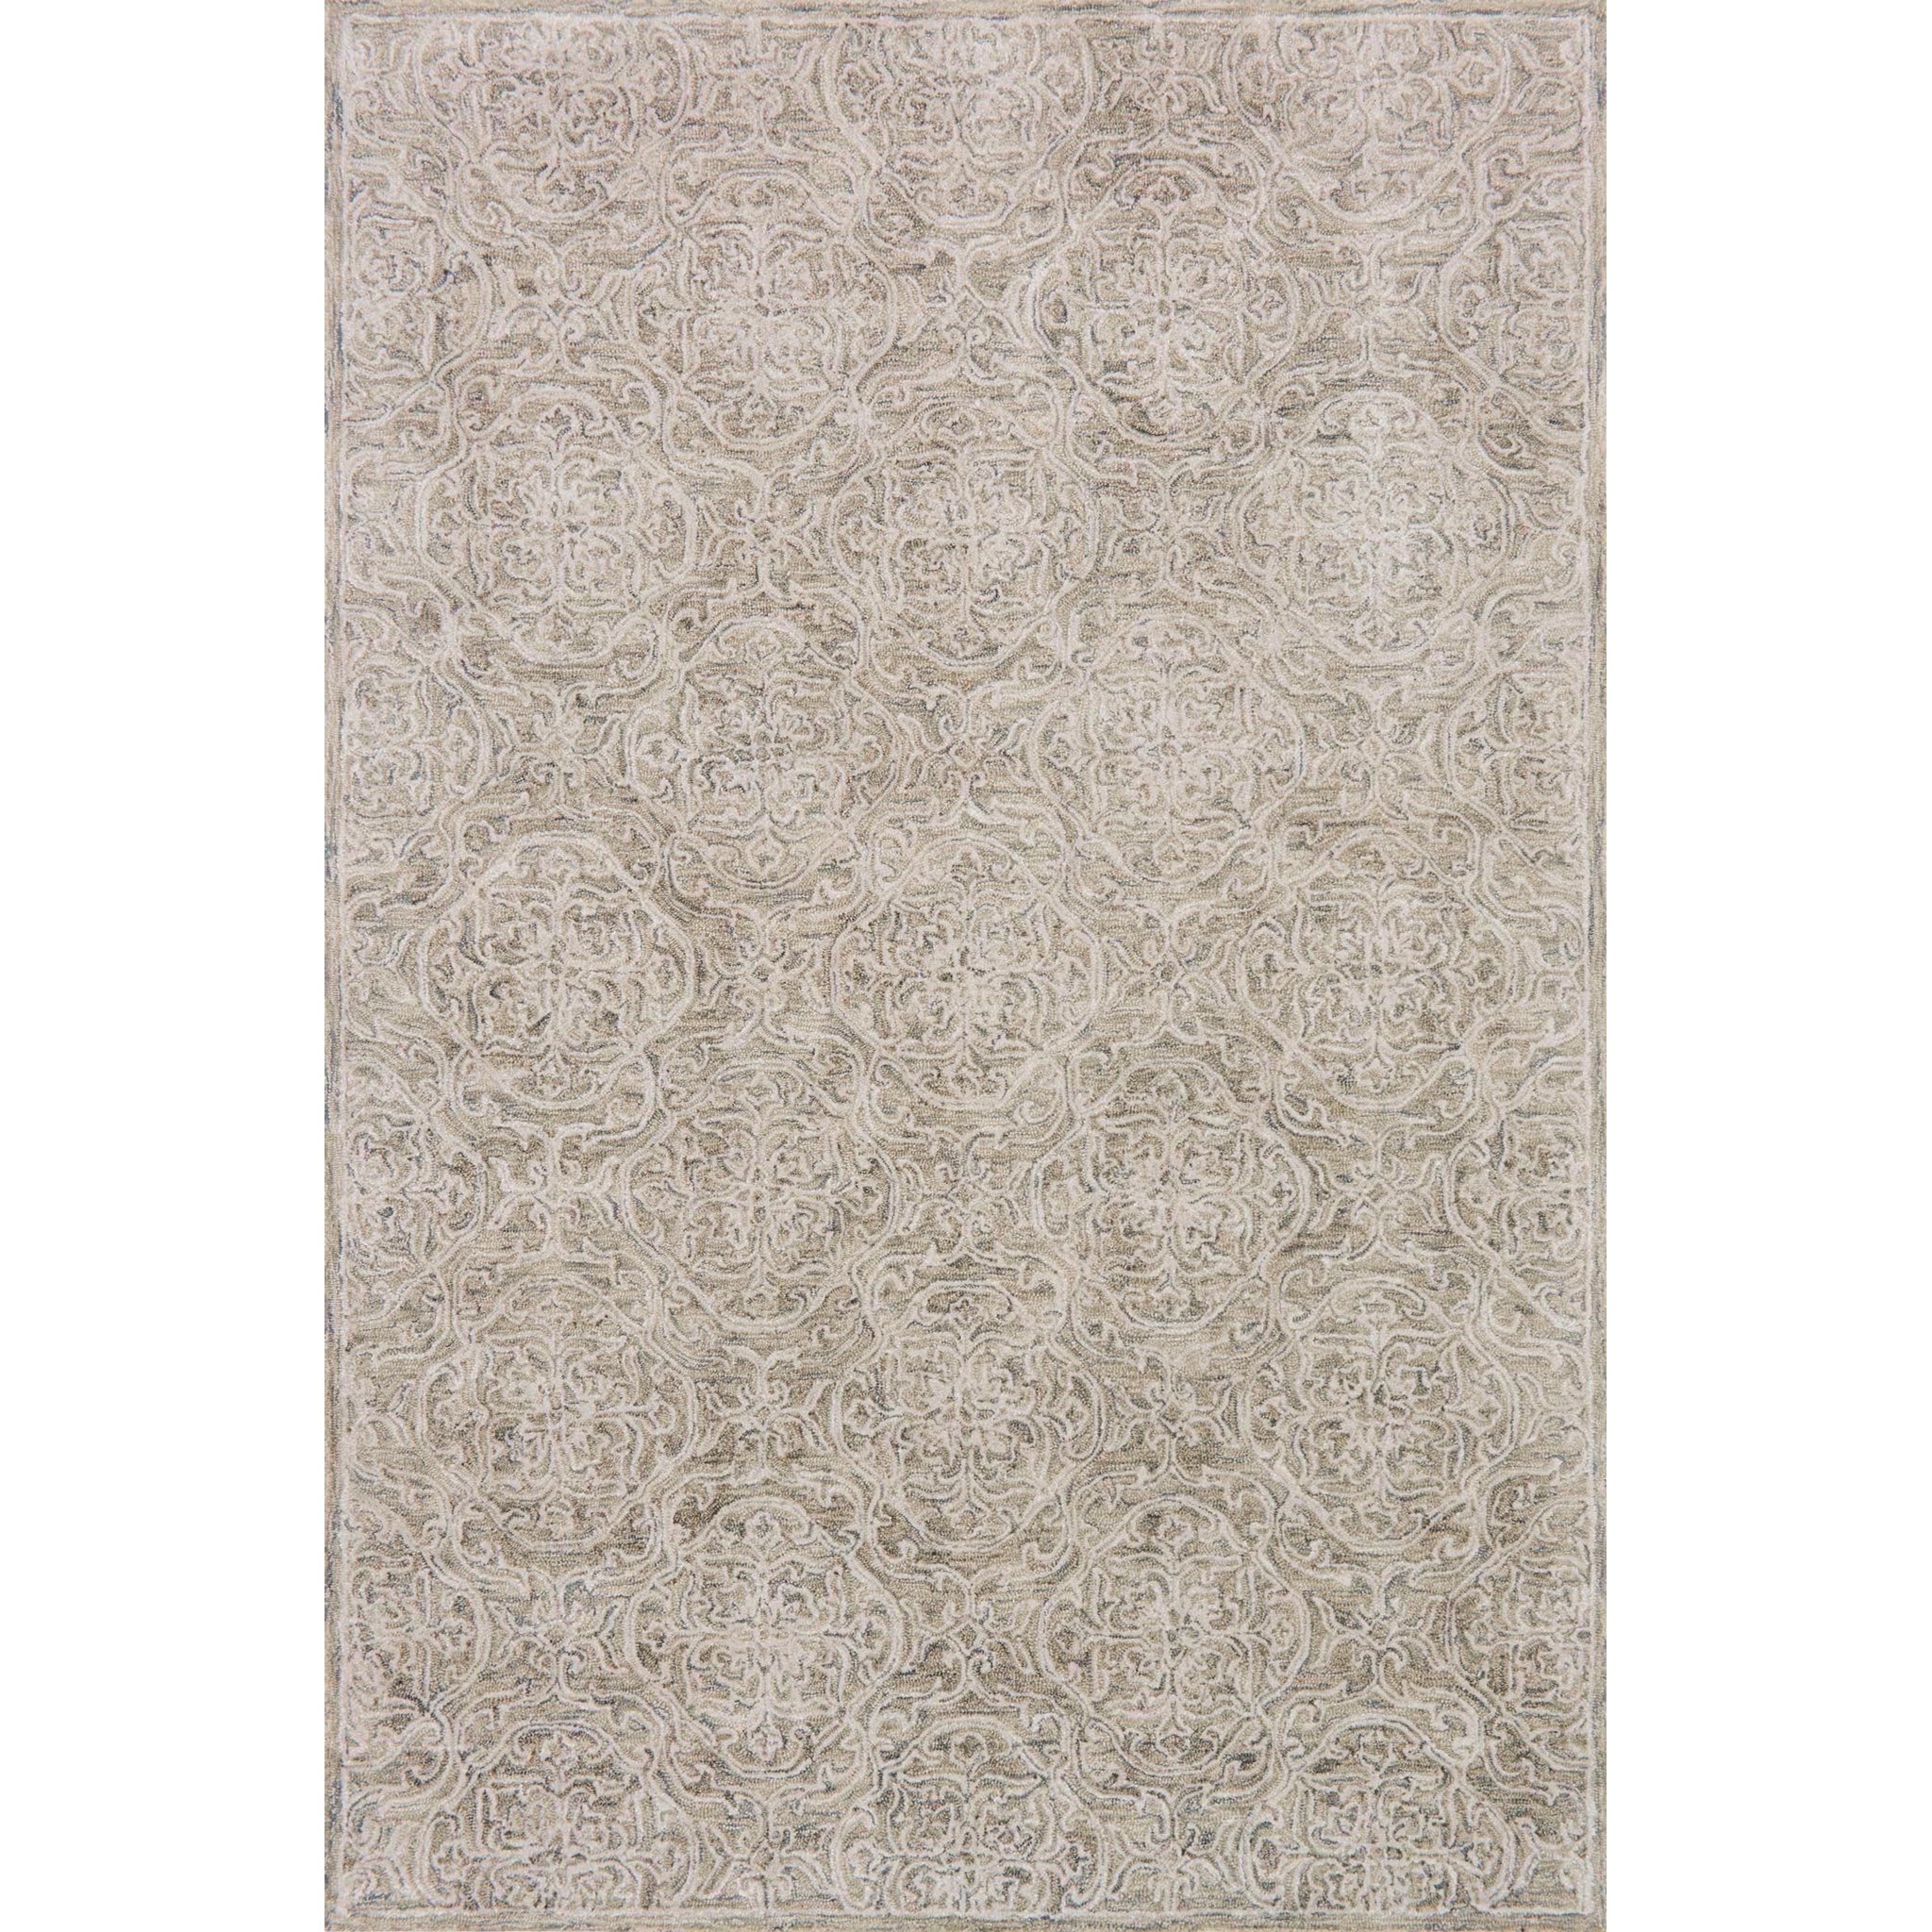 "Filigree 7'-9"" X 9'-9"" Rug by Loloi Rugs at Virginia Furniture Market"